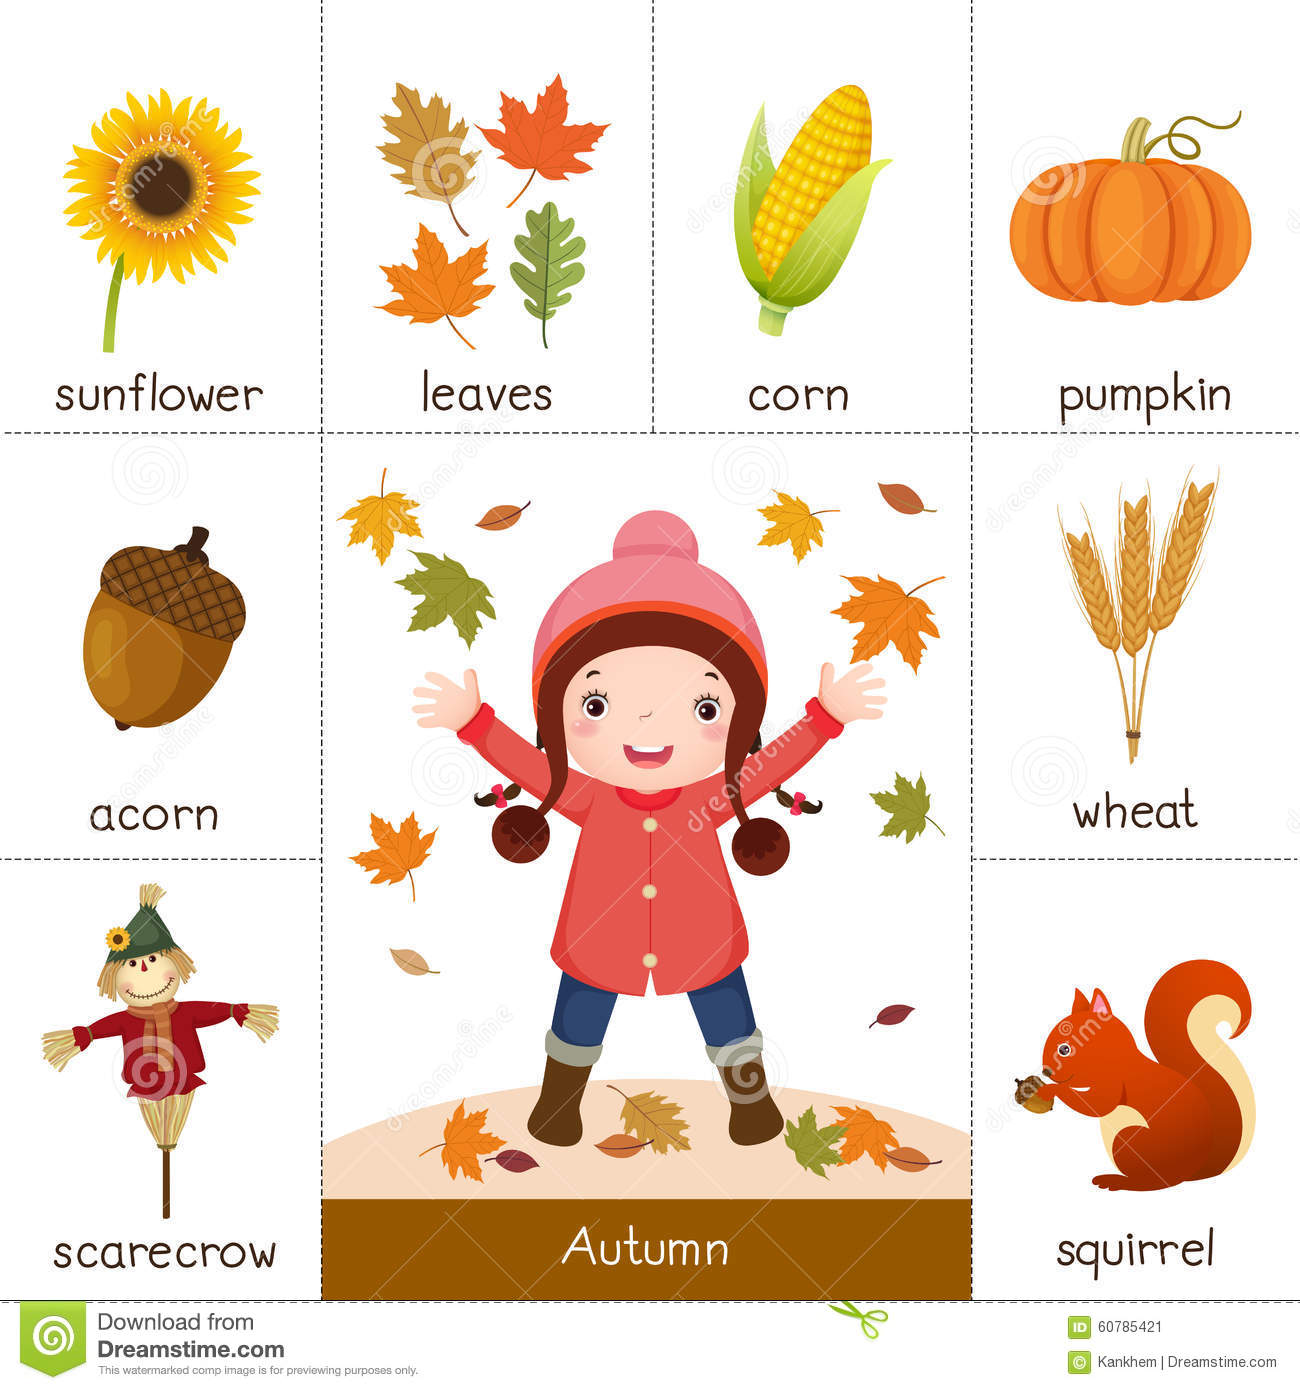 Printable Flash Card For Autumn And Little Girl Playing